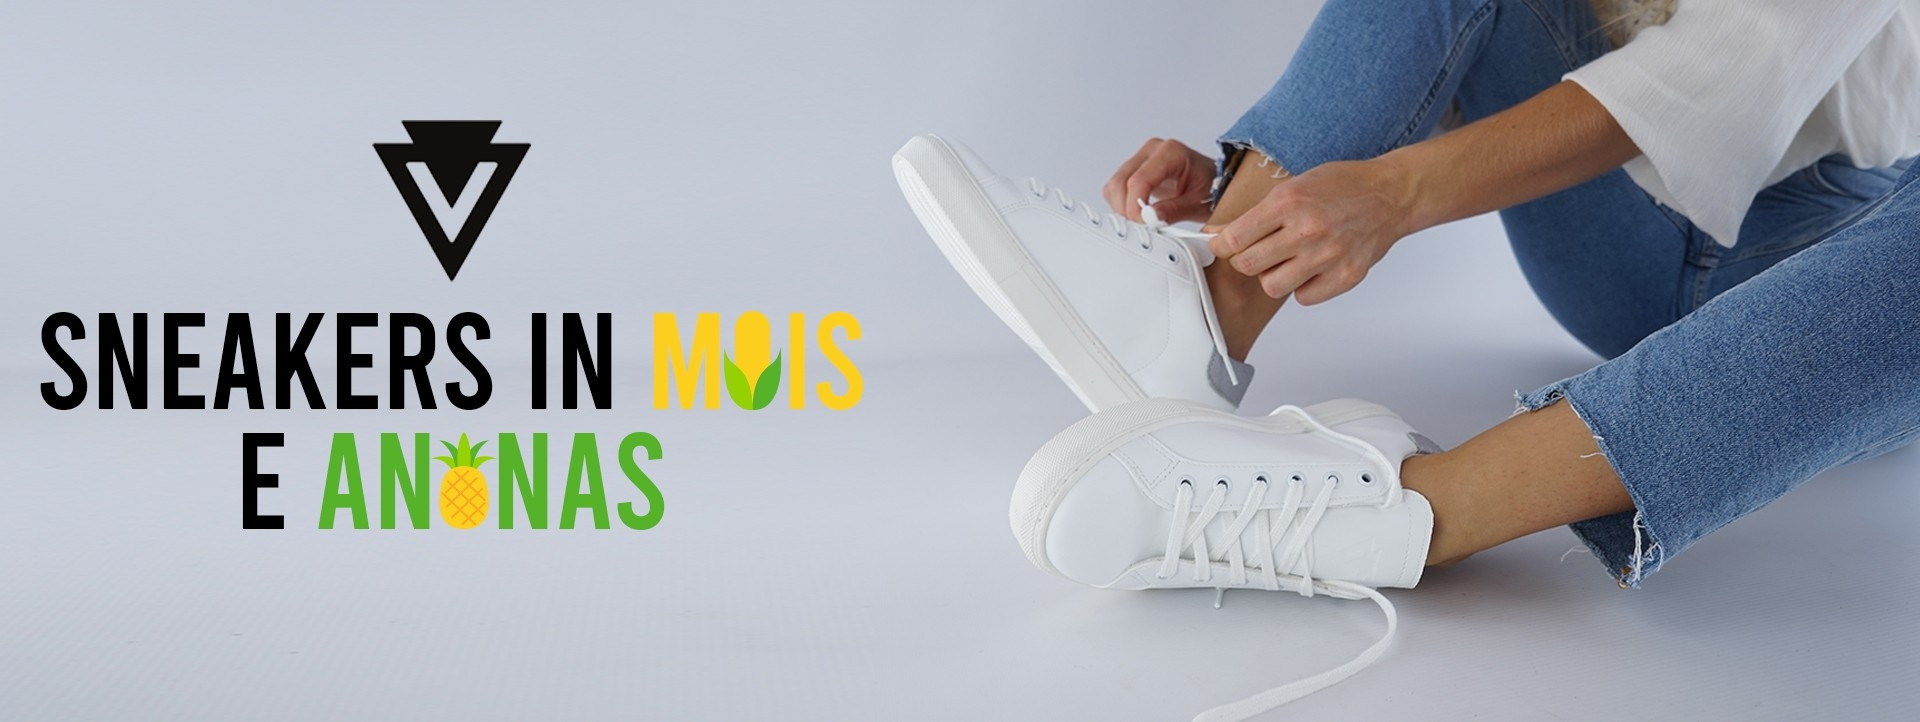 VSI - Veganshoes.it